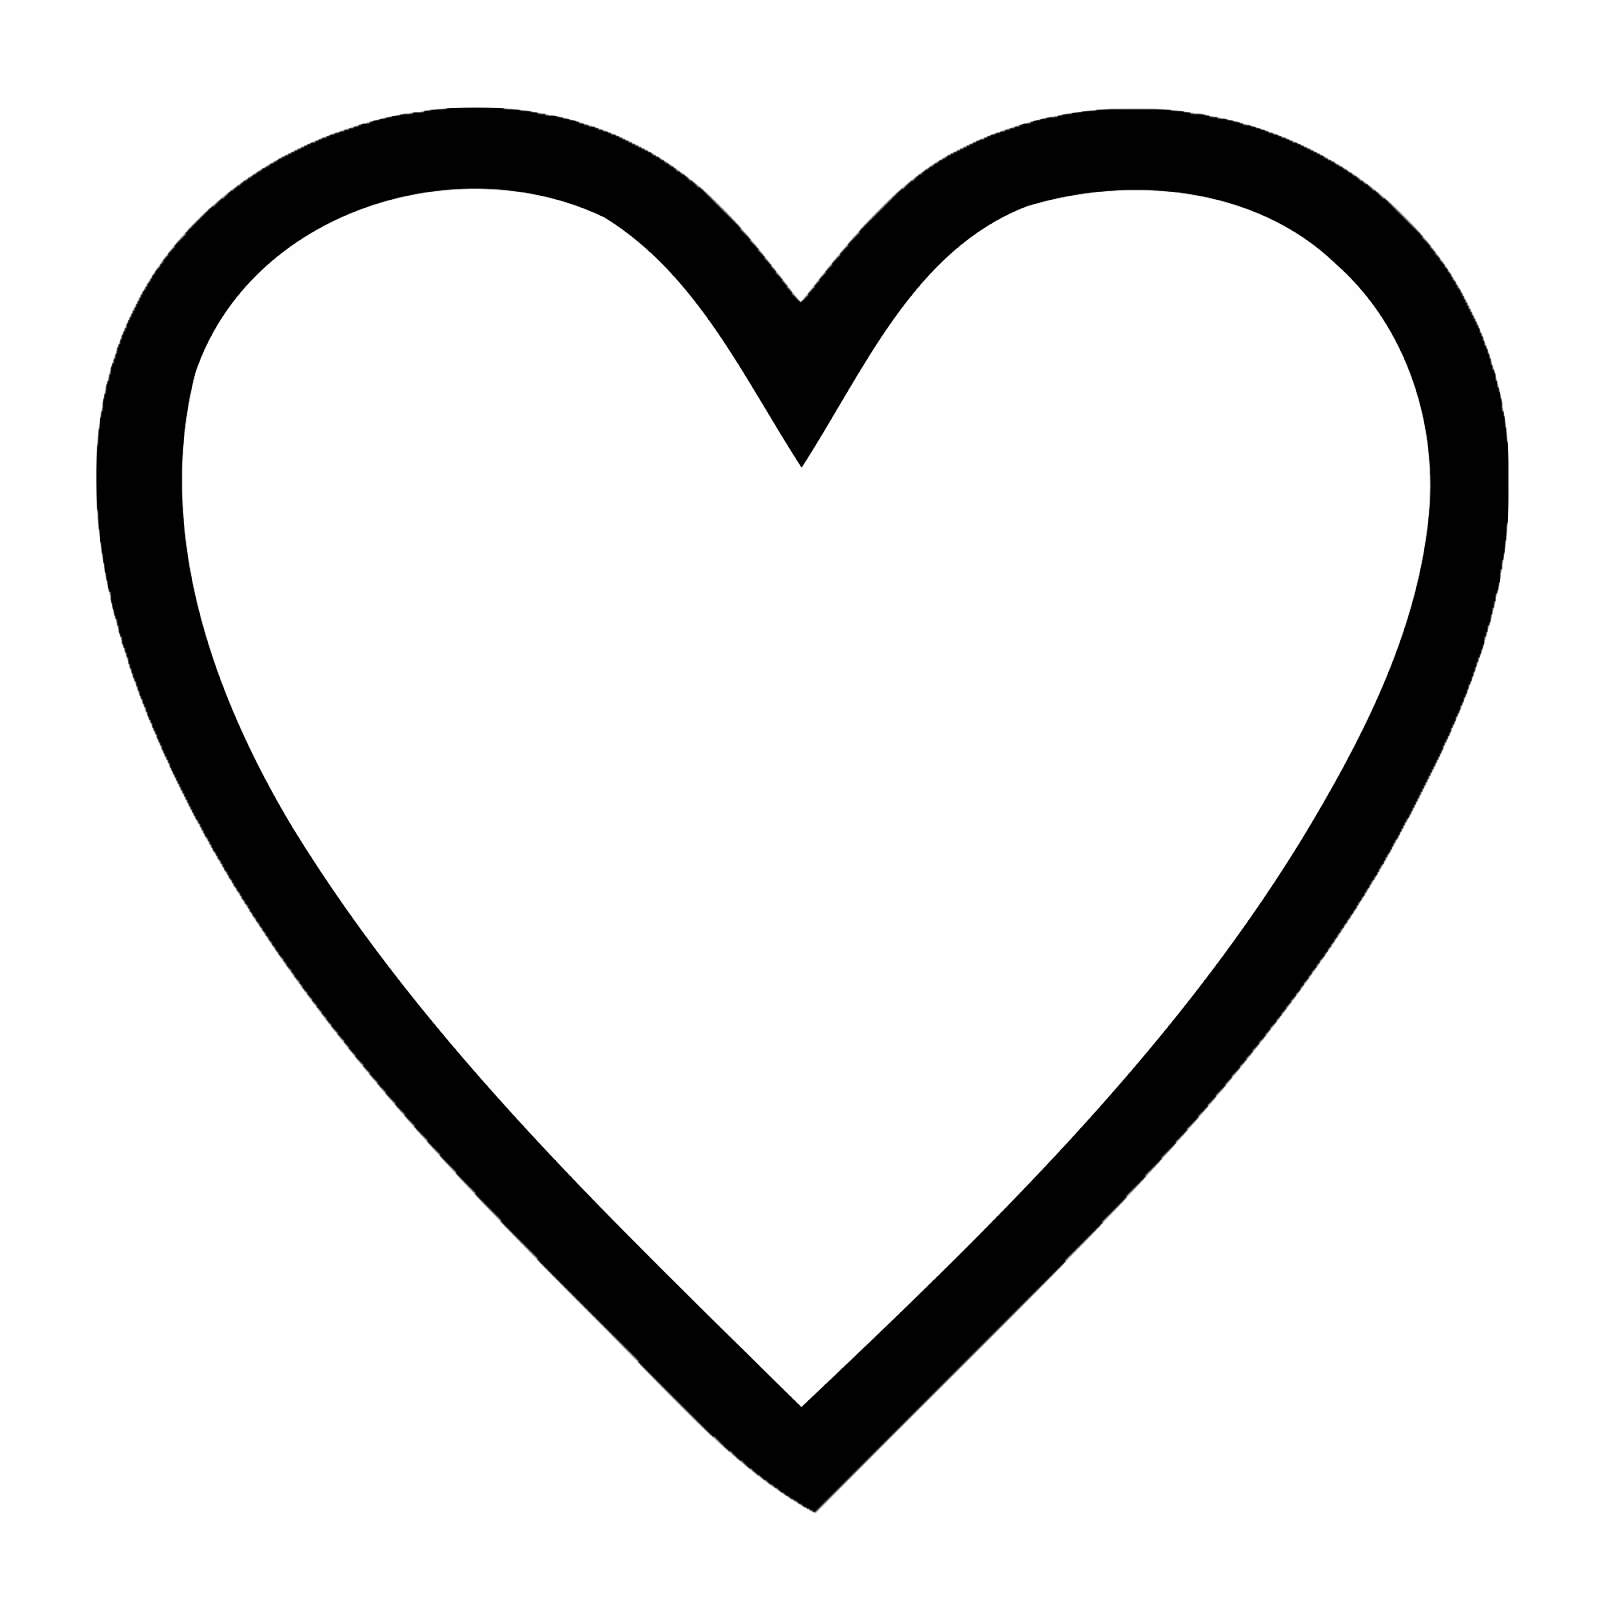 Black and white double heart clipart vector transparent library Open heart outline clipart vector transparent library